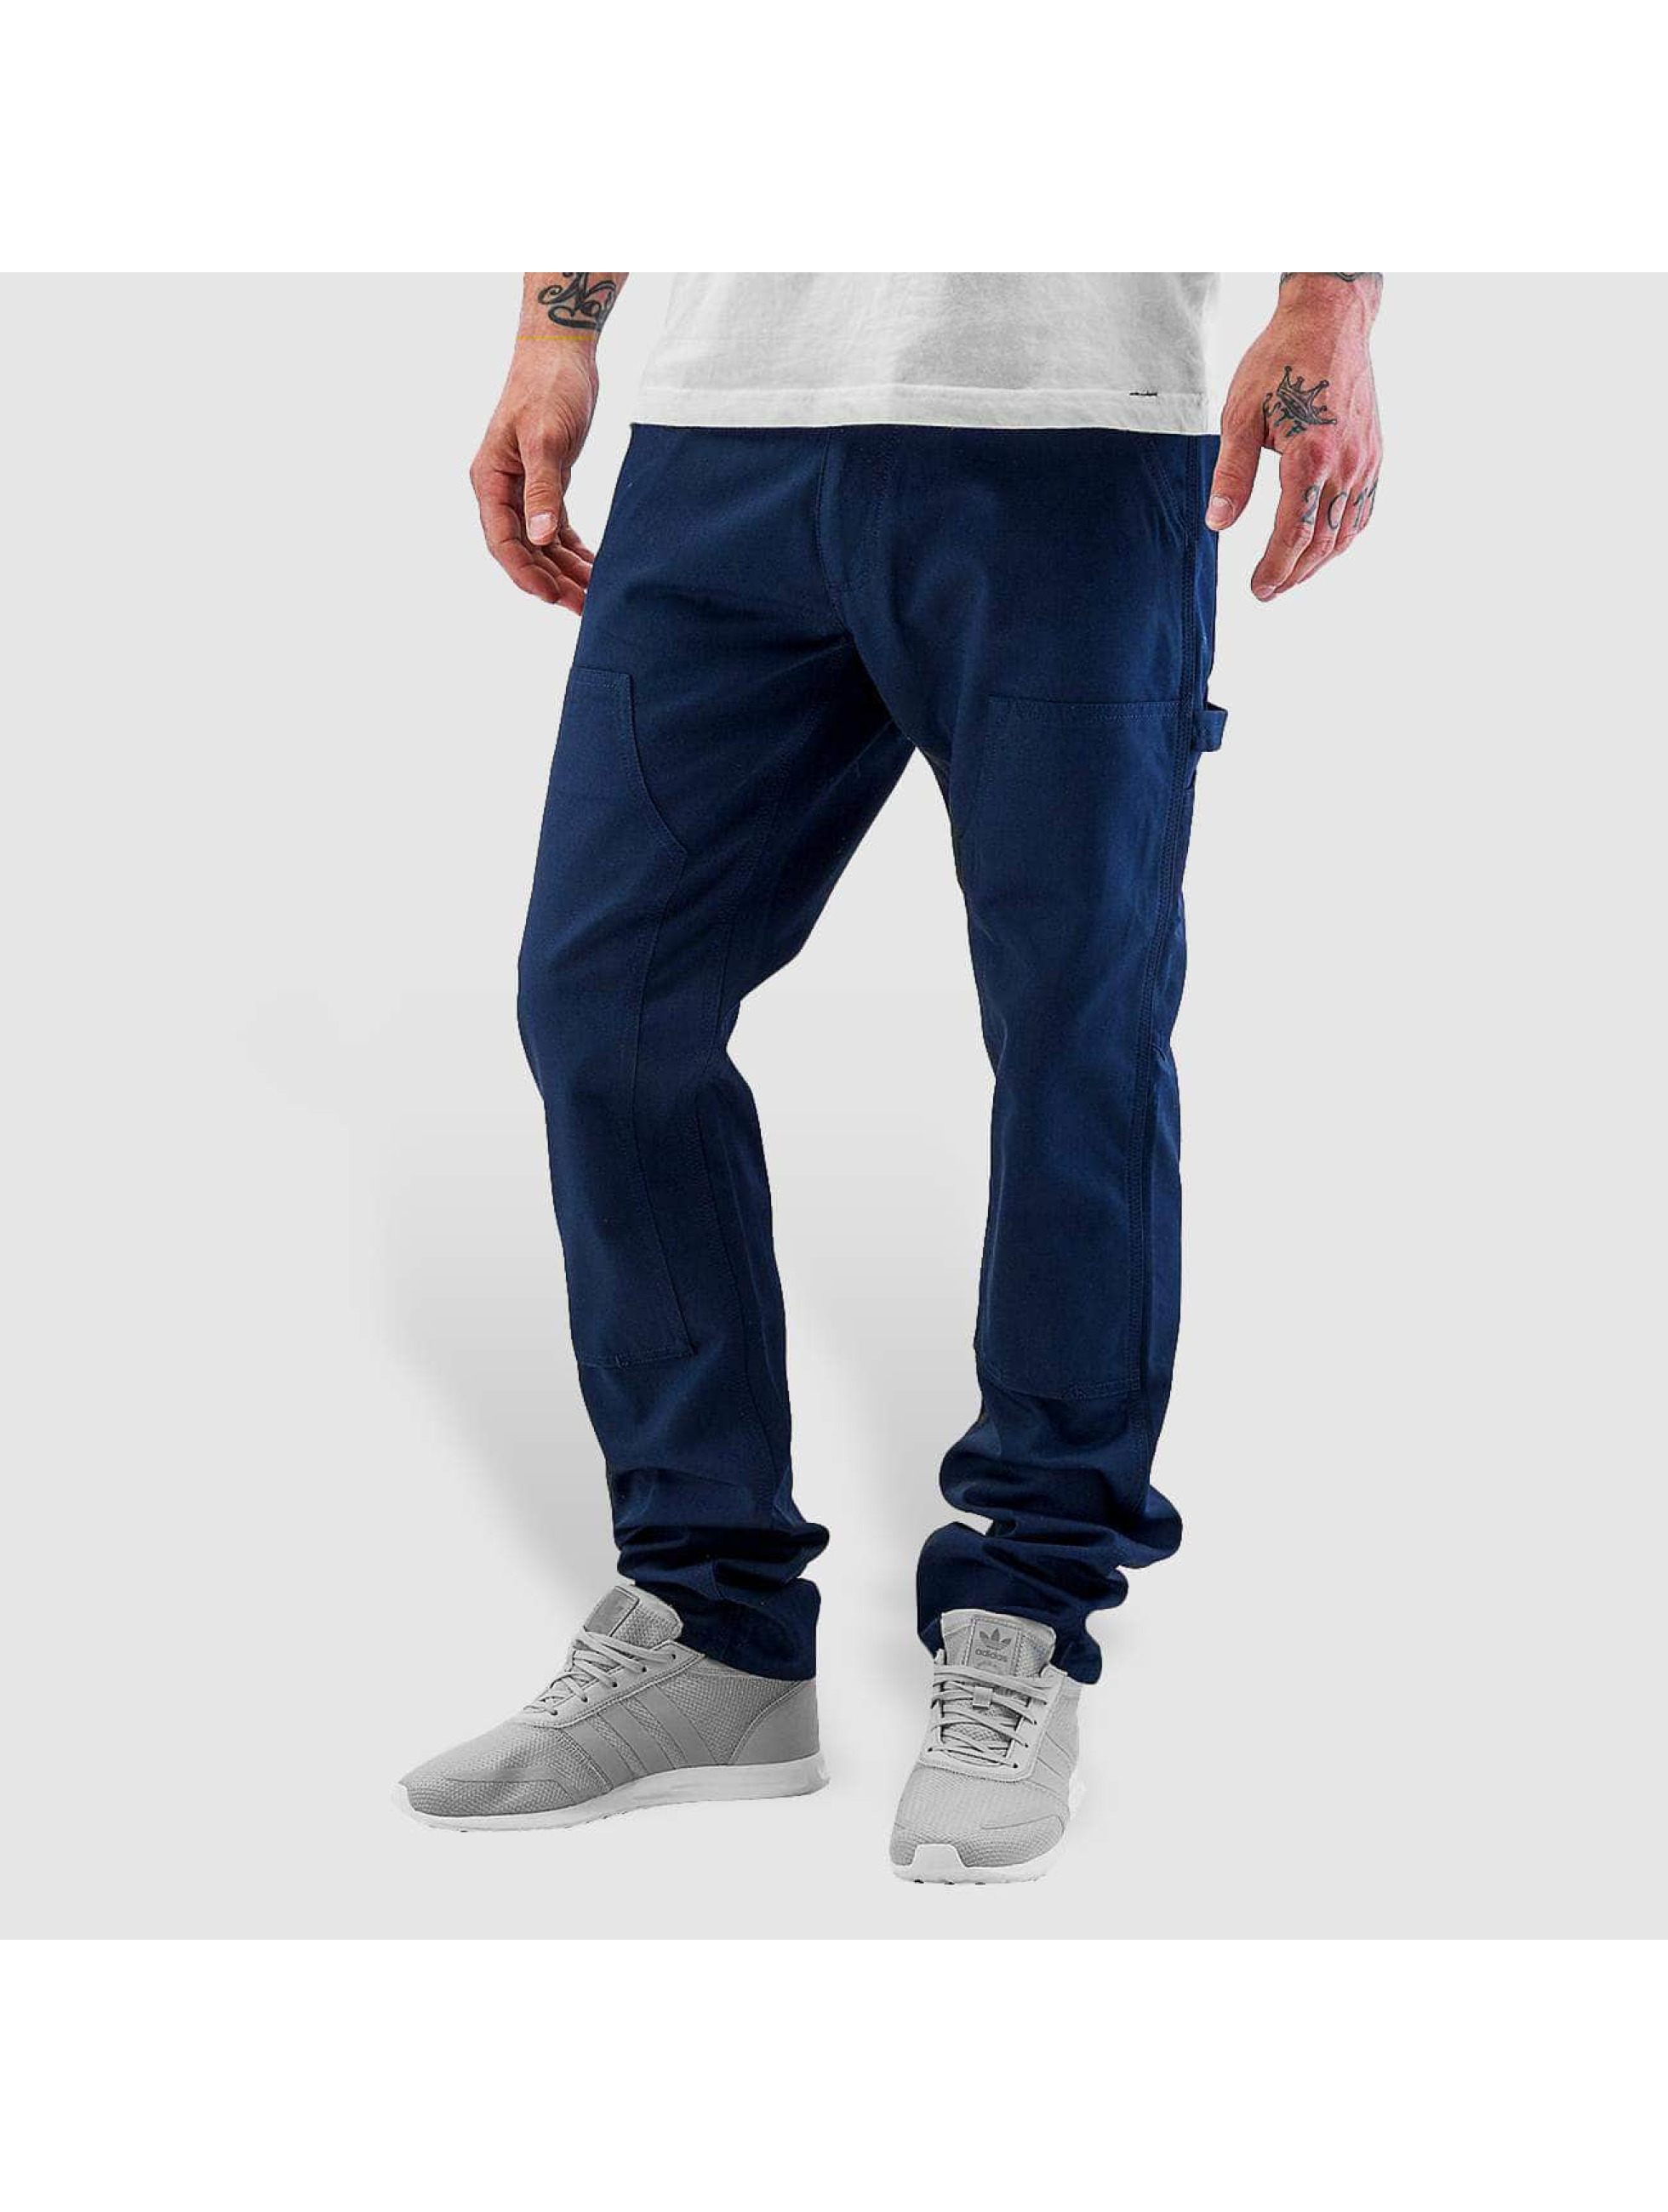 Carhartt WIP Straight Fit Jeans Lincoln Double Knee blue